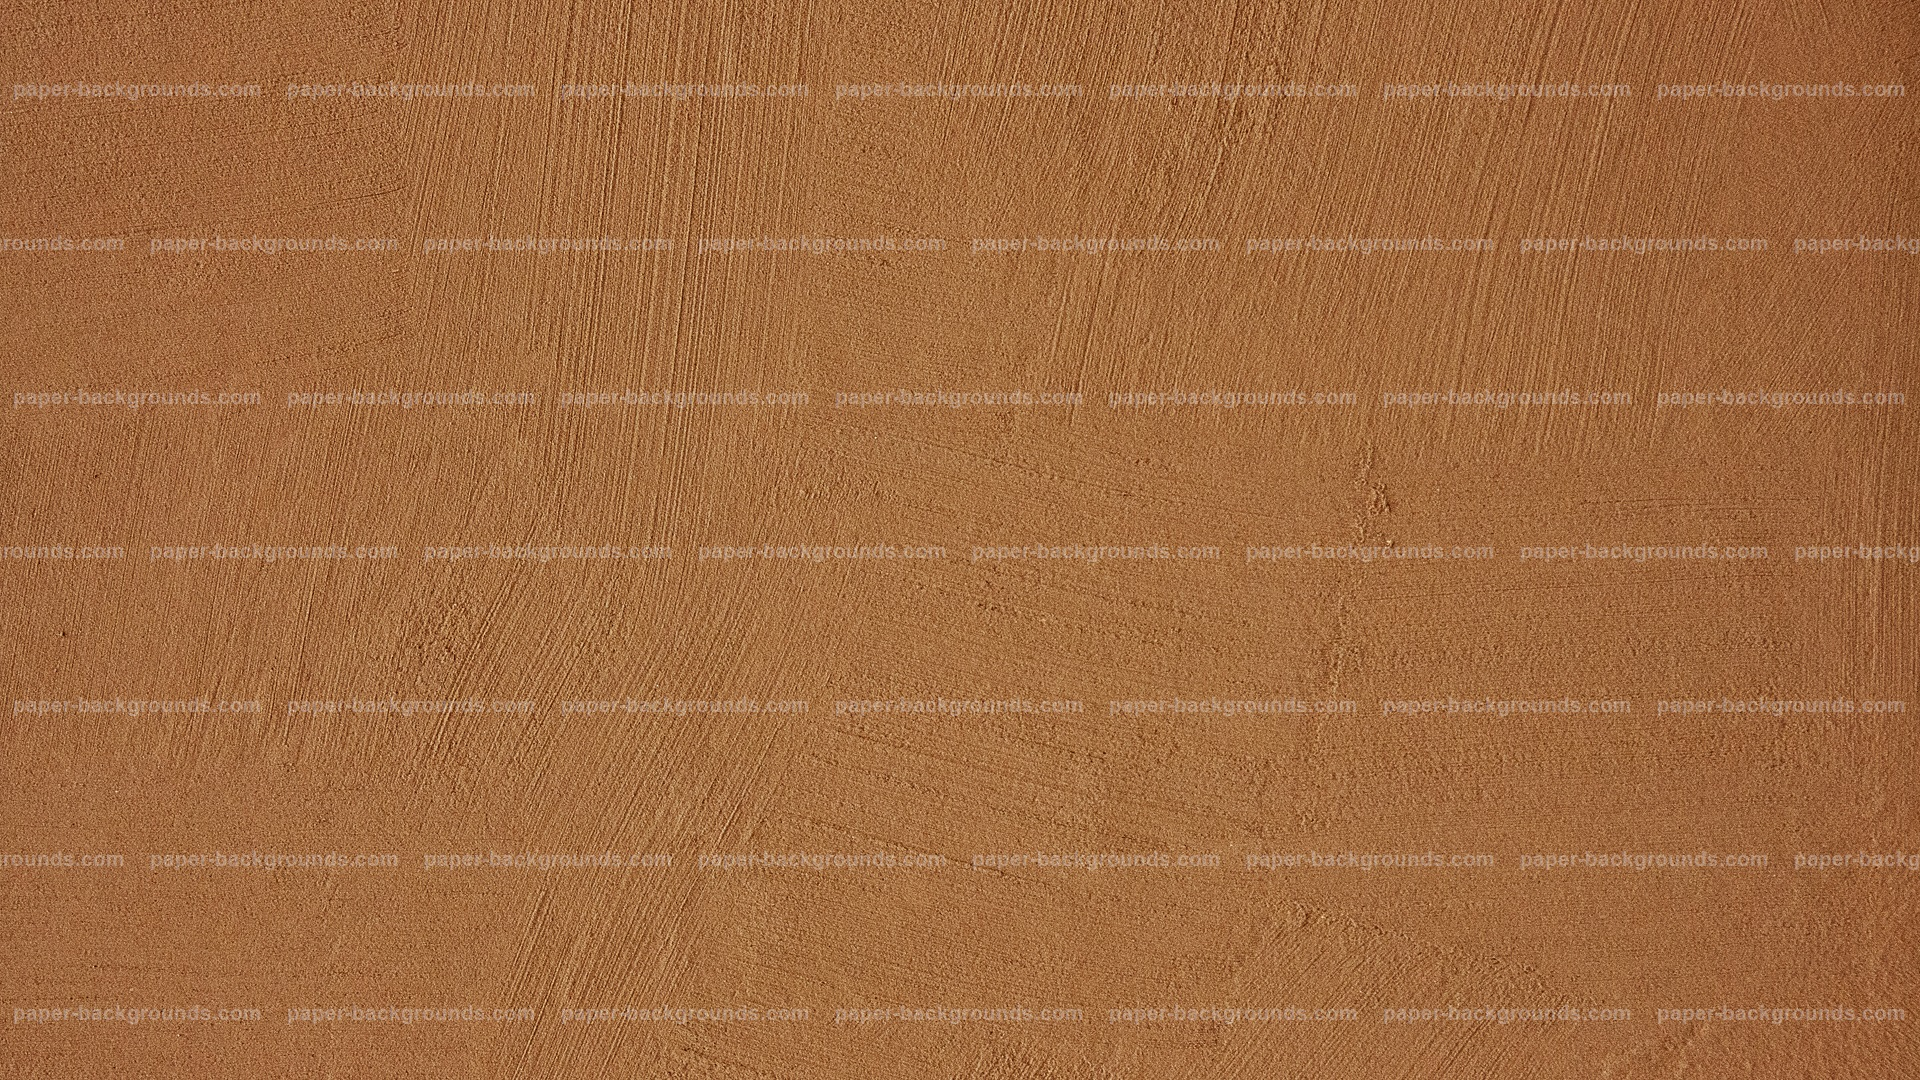 Brown Painted Concrete Wall Texture Background HD